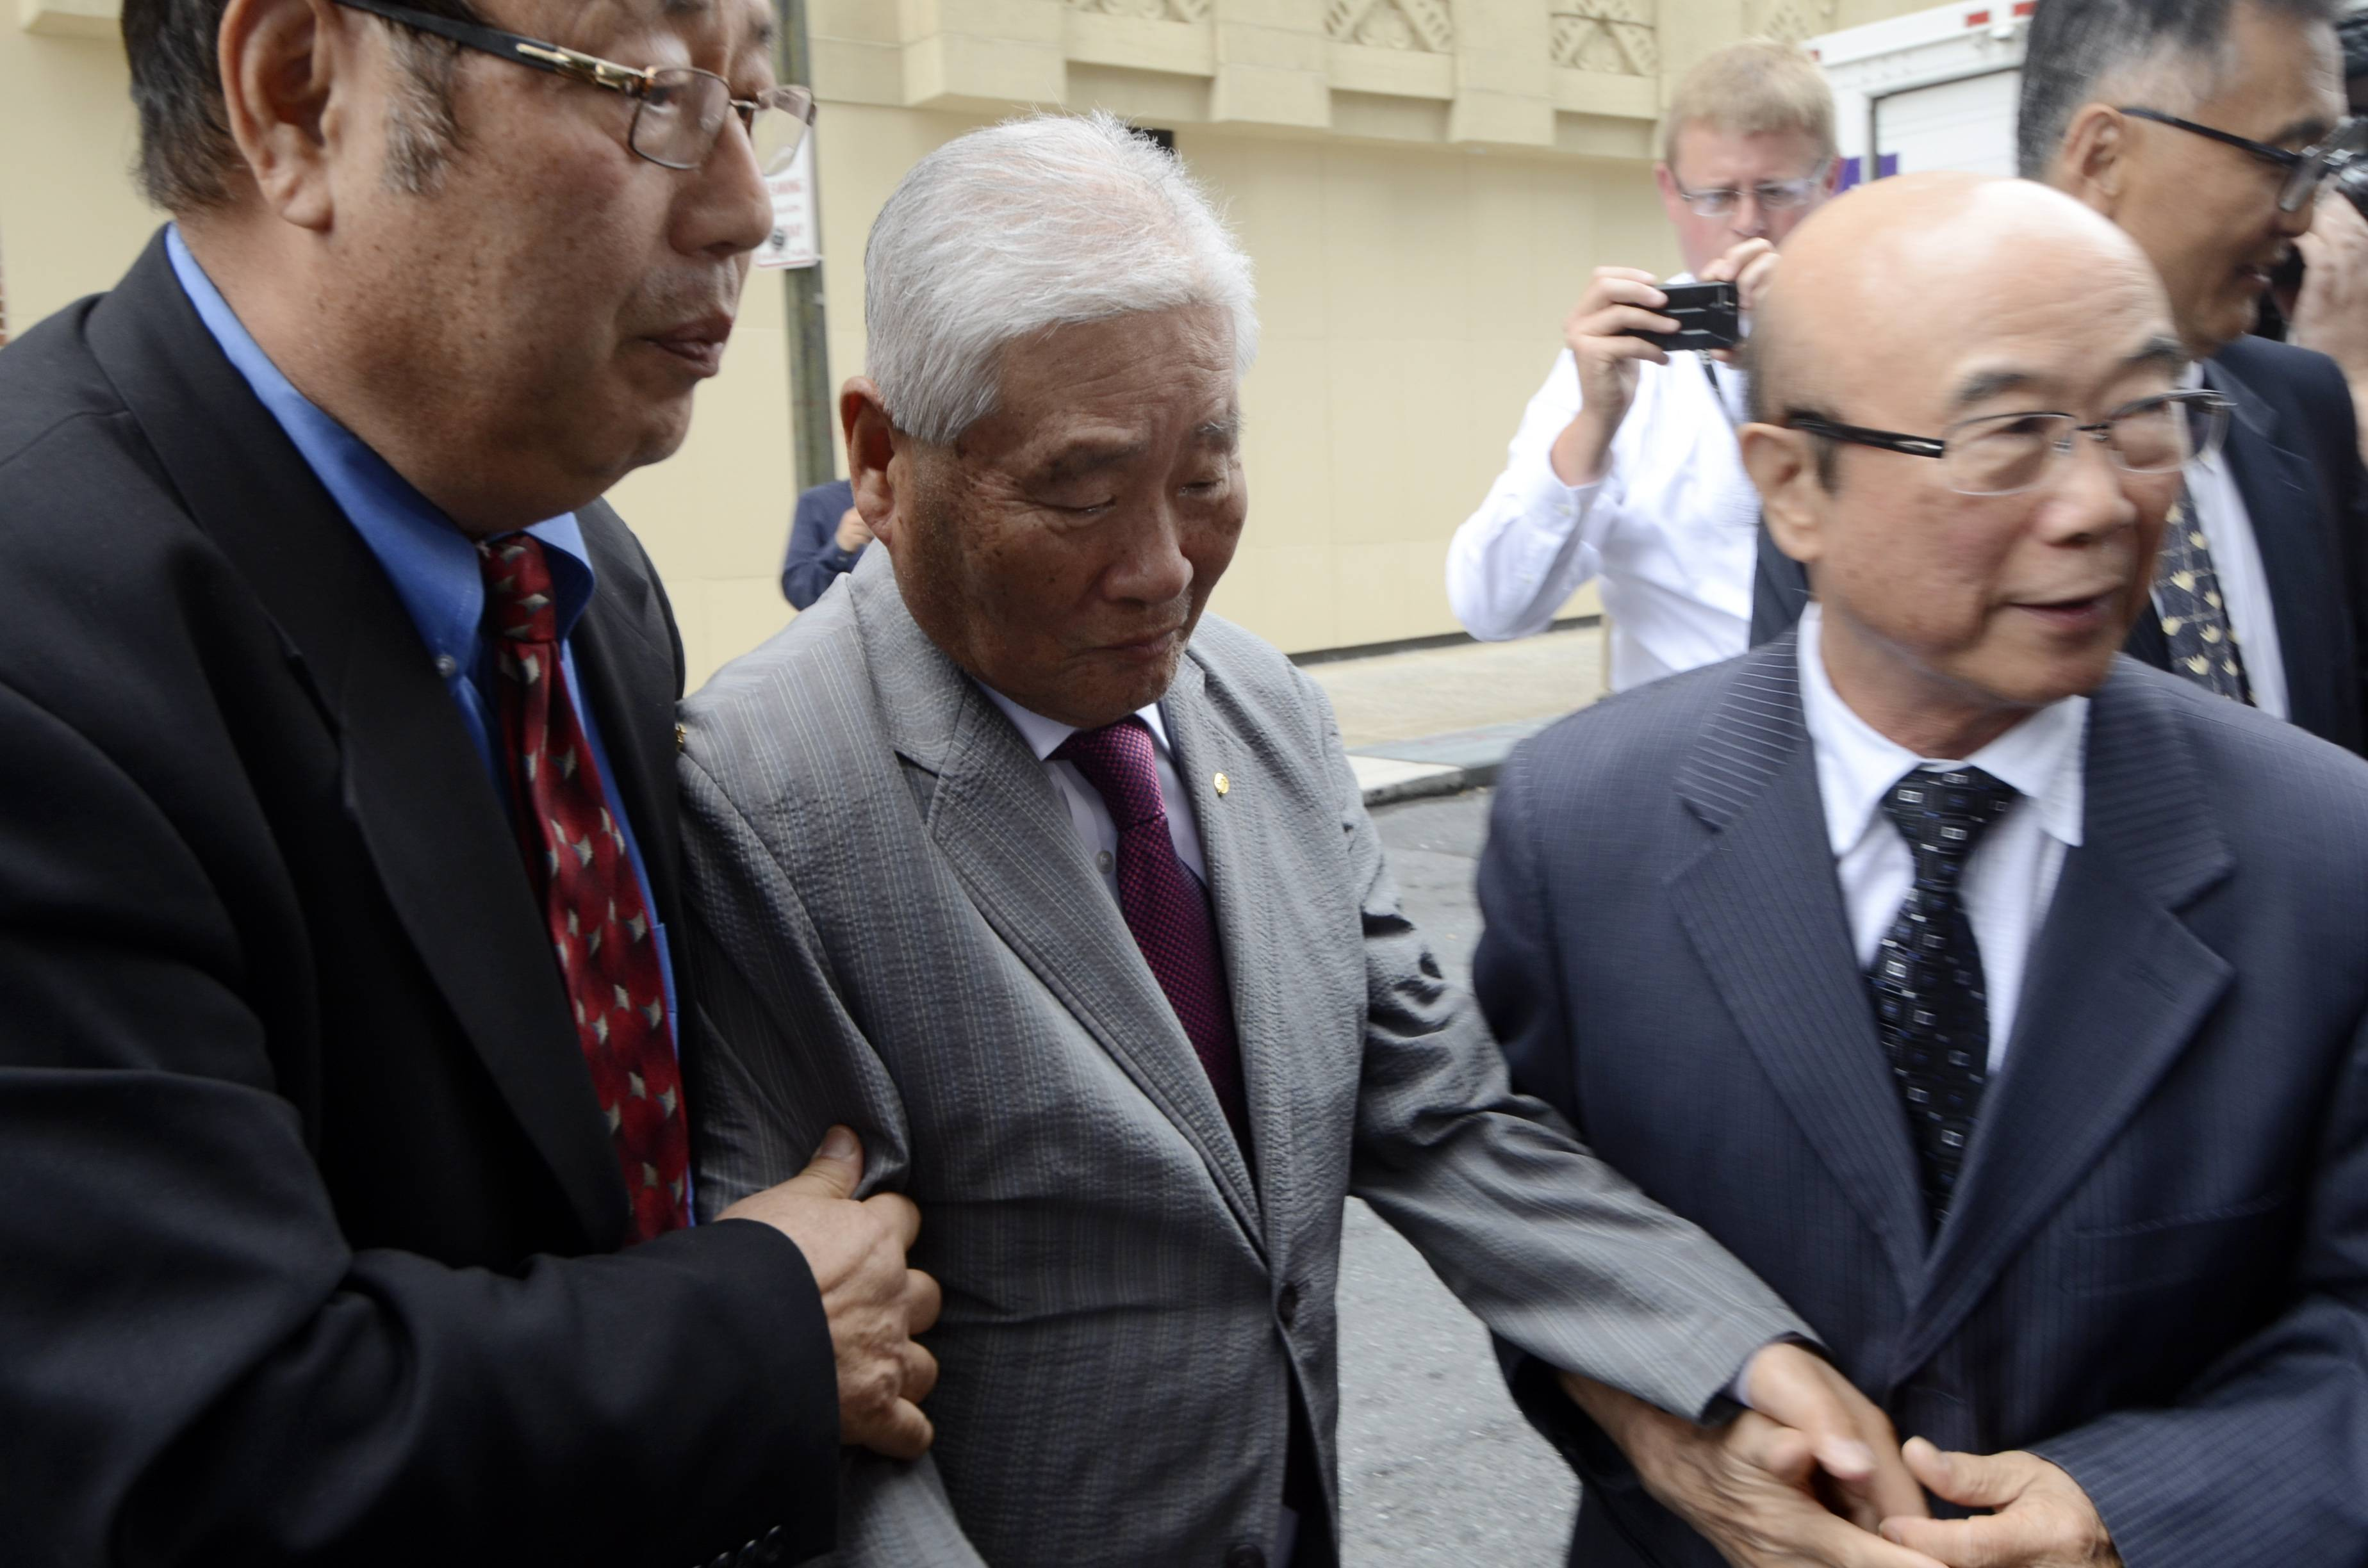 Han Tak Lee, 79, arrives at the federal courthouse Friday with assistance from friends and supporters after his release from a Pennsylvania prison.